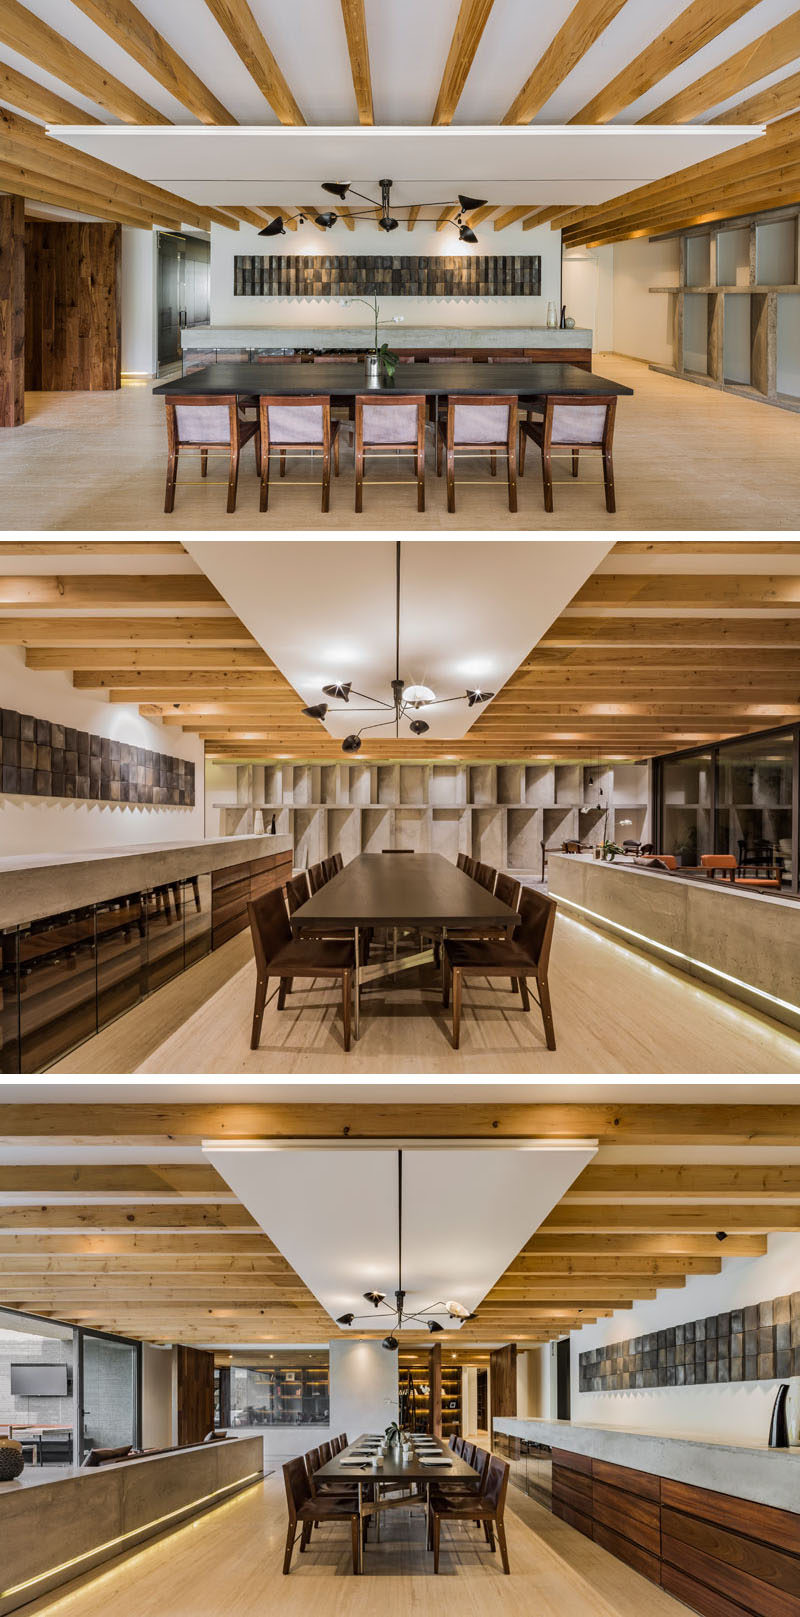 Separated from the living room by a concrete pony wall with embedded lighting, is the main dining area of this modern apartment. A large table fills the open space, while a custom-built concrete and wood sideboard runs alongside it. #DiningRoom #PonyWall #ModernApartment